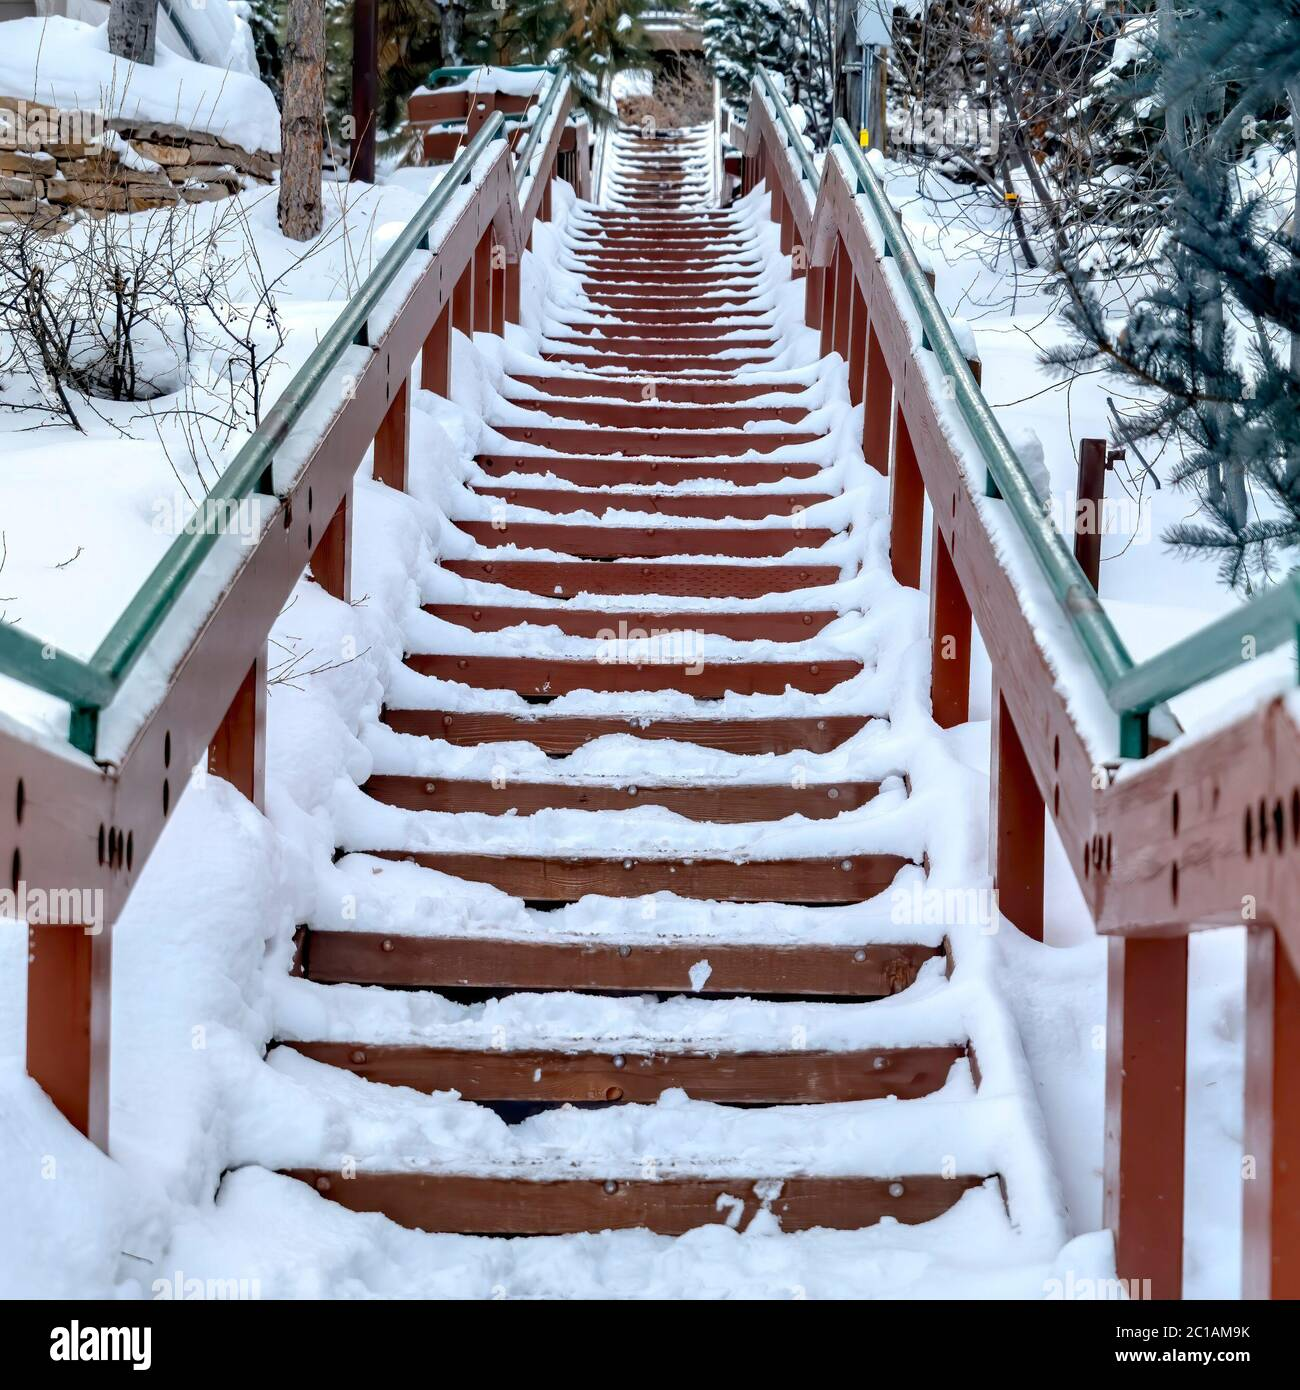 Square frame Focus on stairway that goes up a snowy hill with residential homes in winter Stock Photo